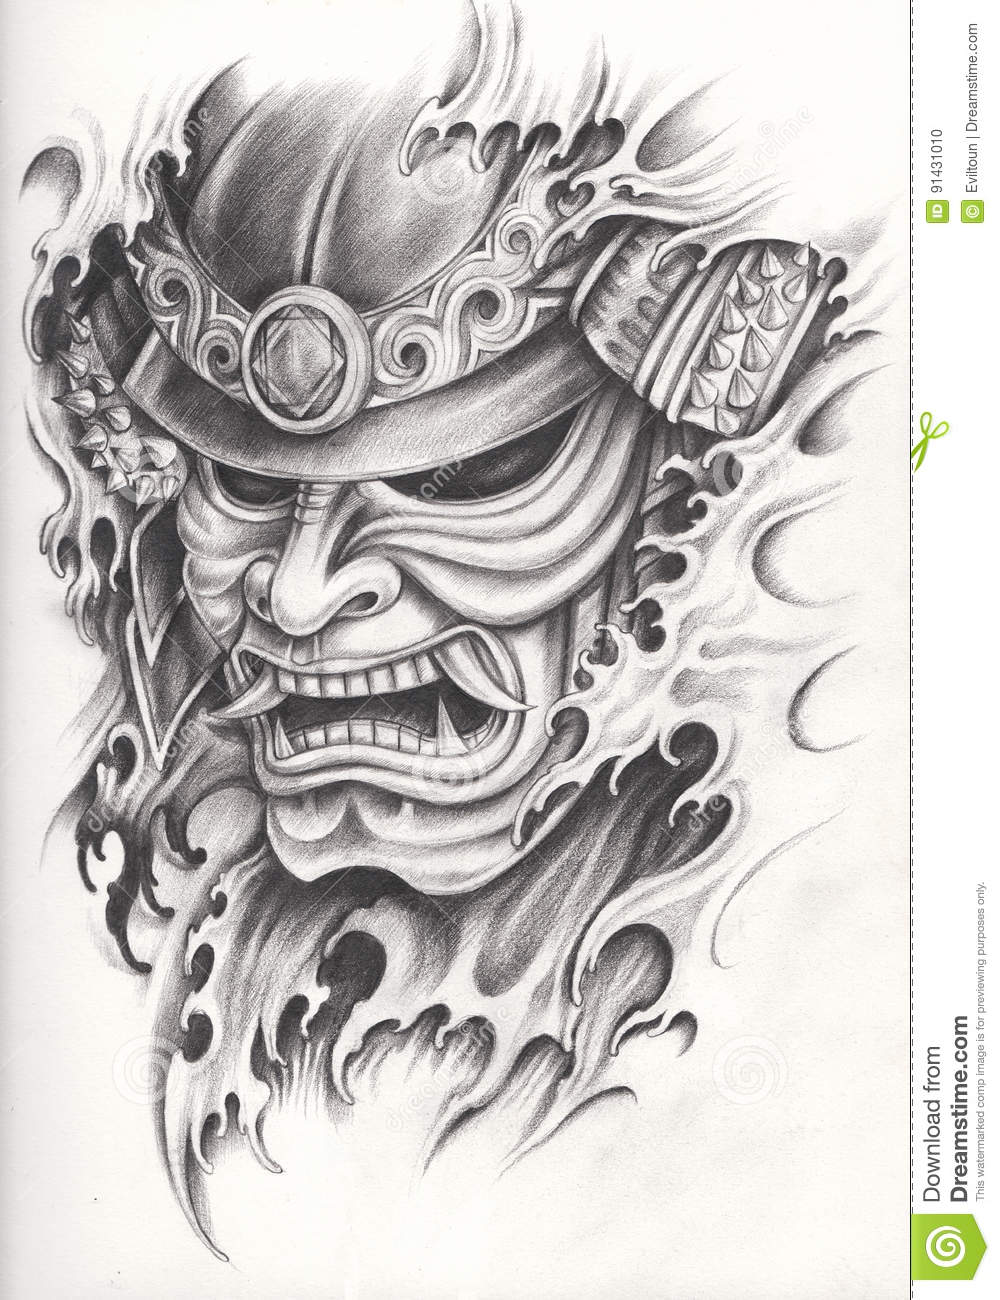 Tatouage Samourai De Guerrier Illustration Stock Illustration Du